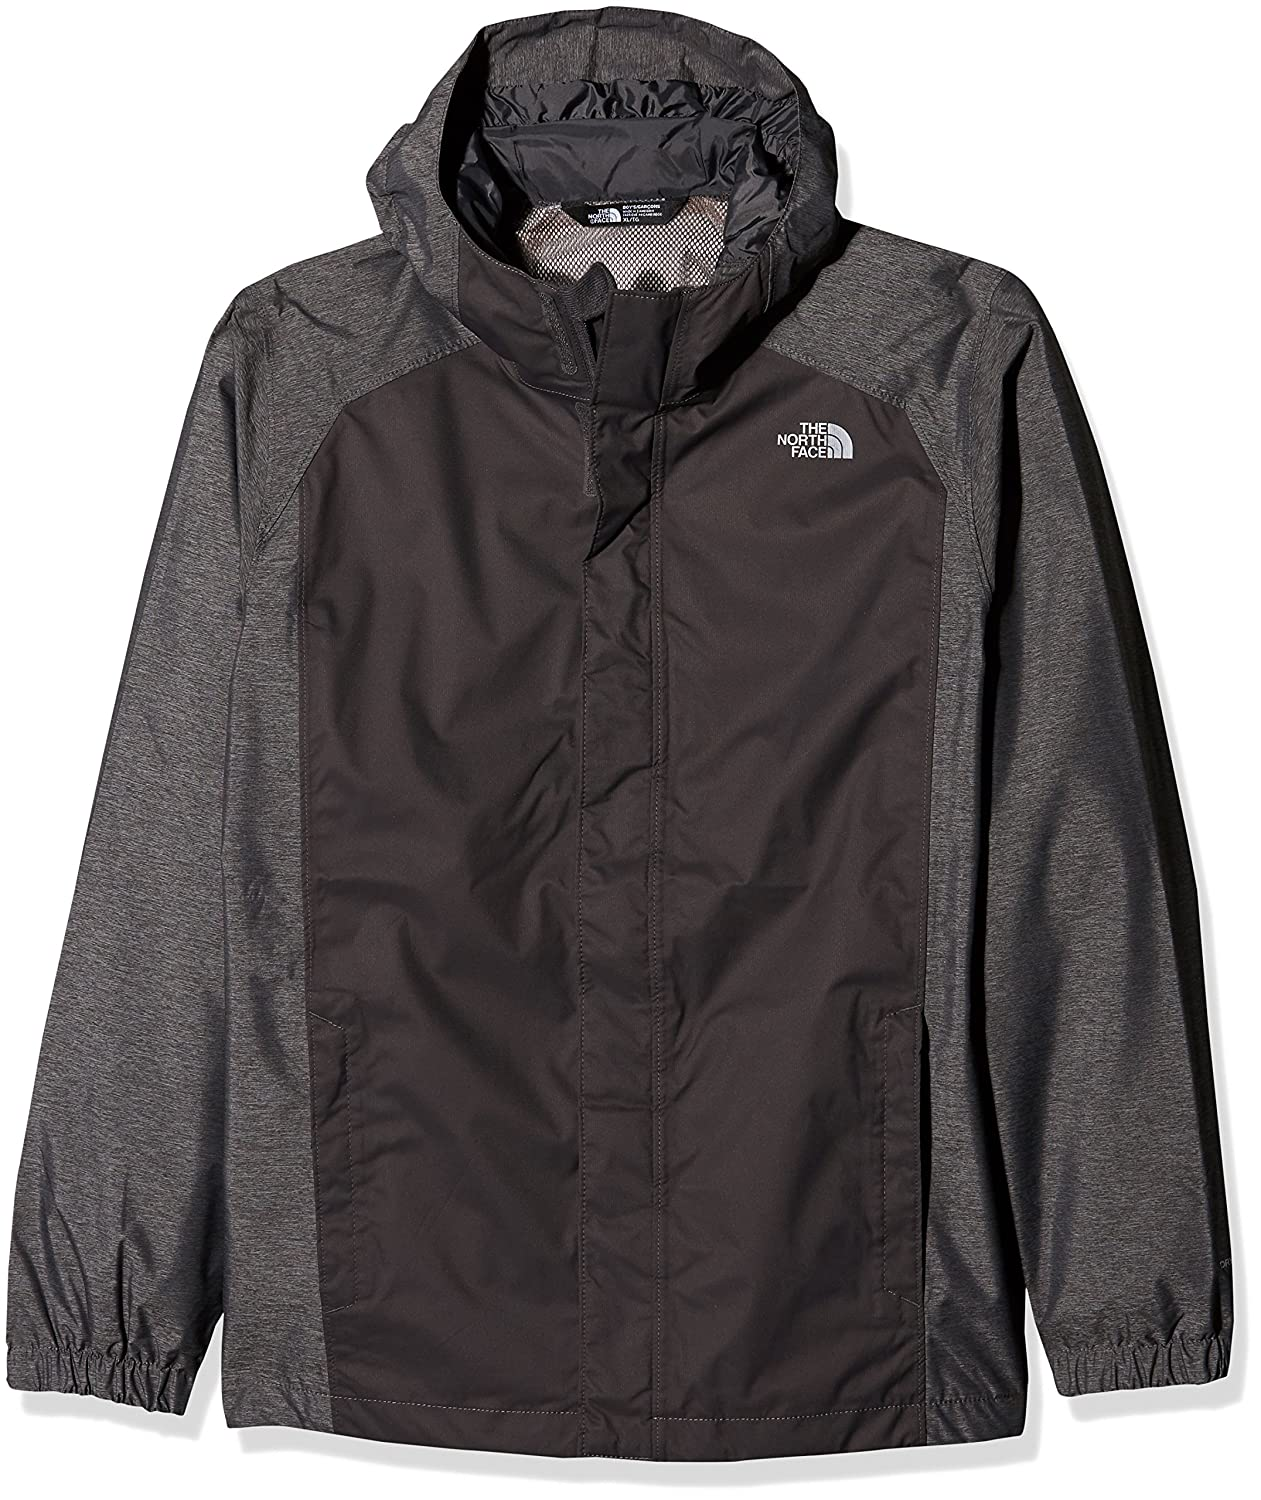 The North Face T92u21 7d8312c43787